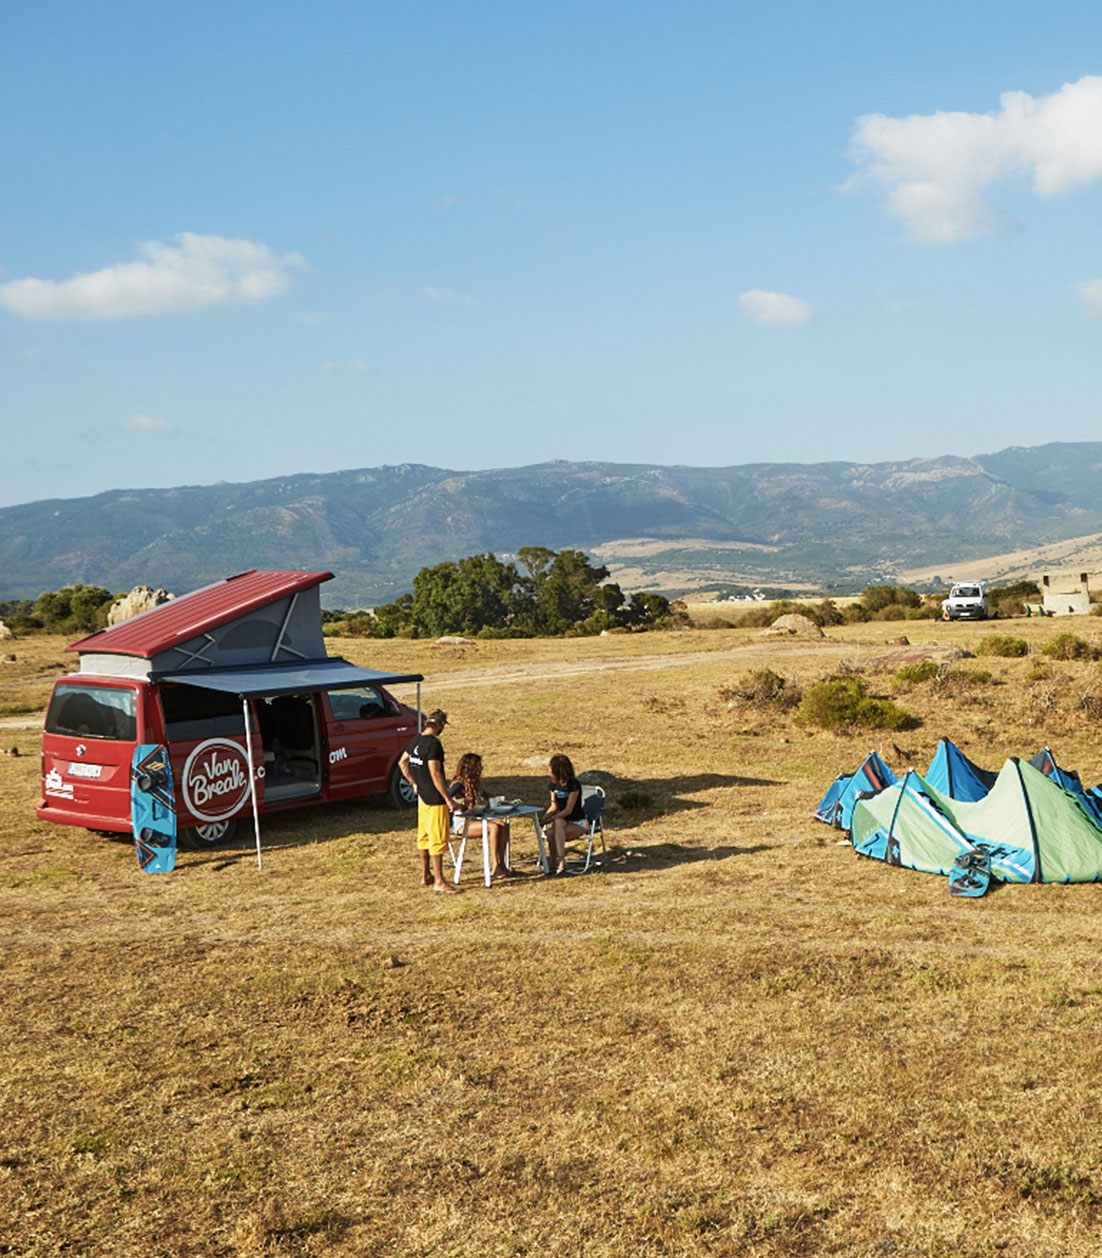 Road Trip Campervan Tarifa with kitesurfing lessons